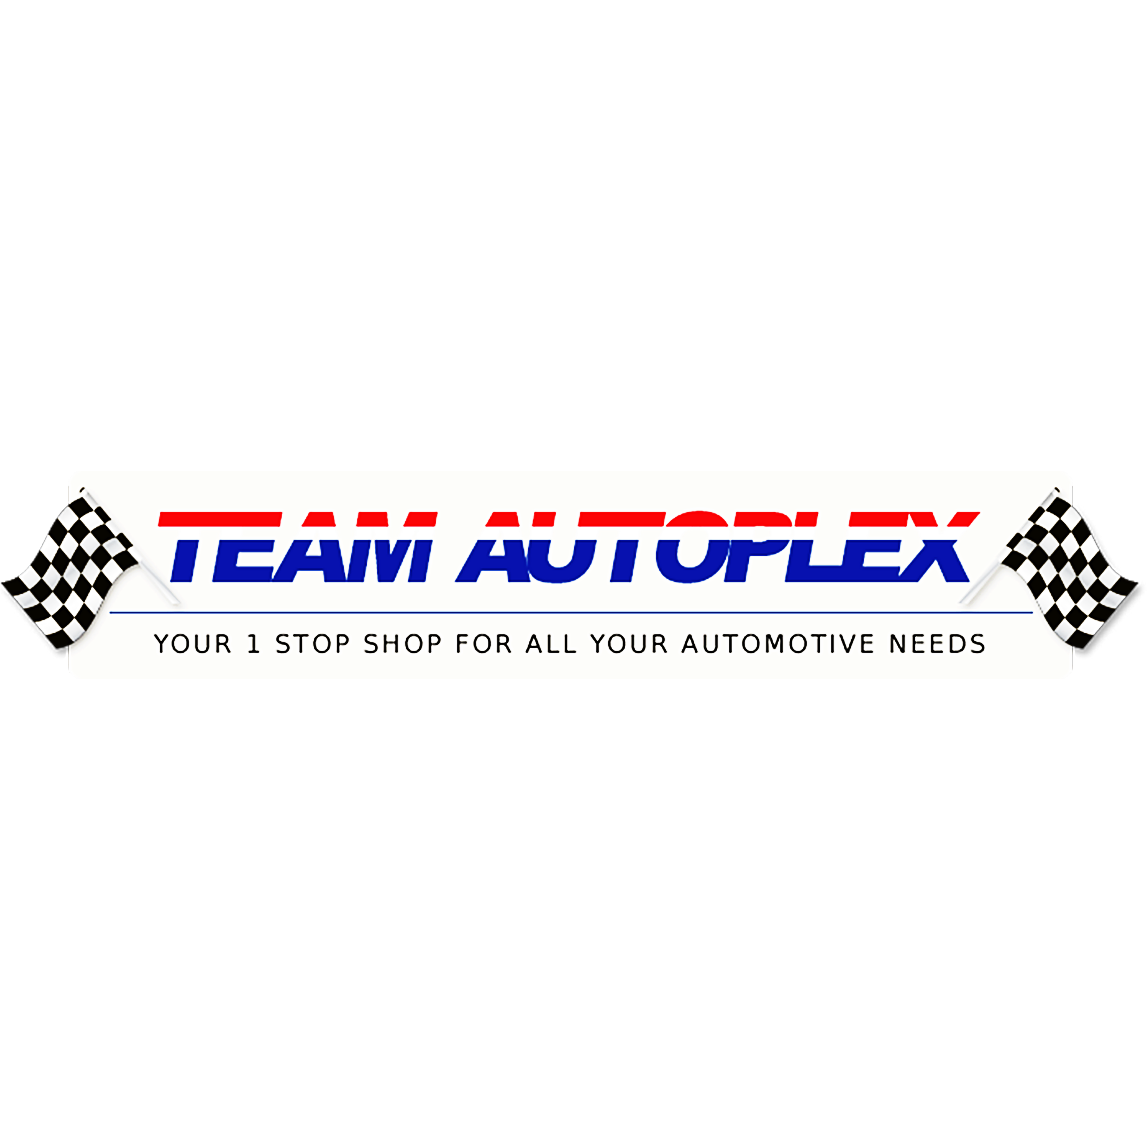 Team Autoplex